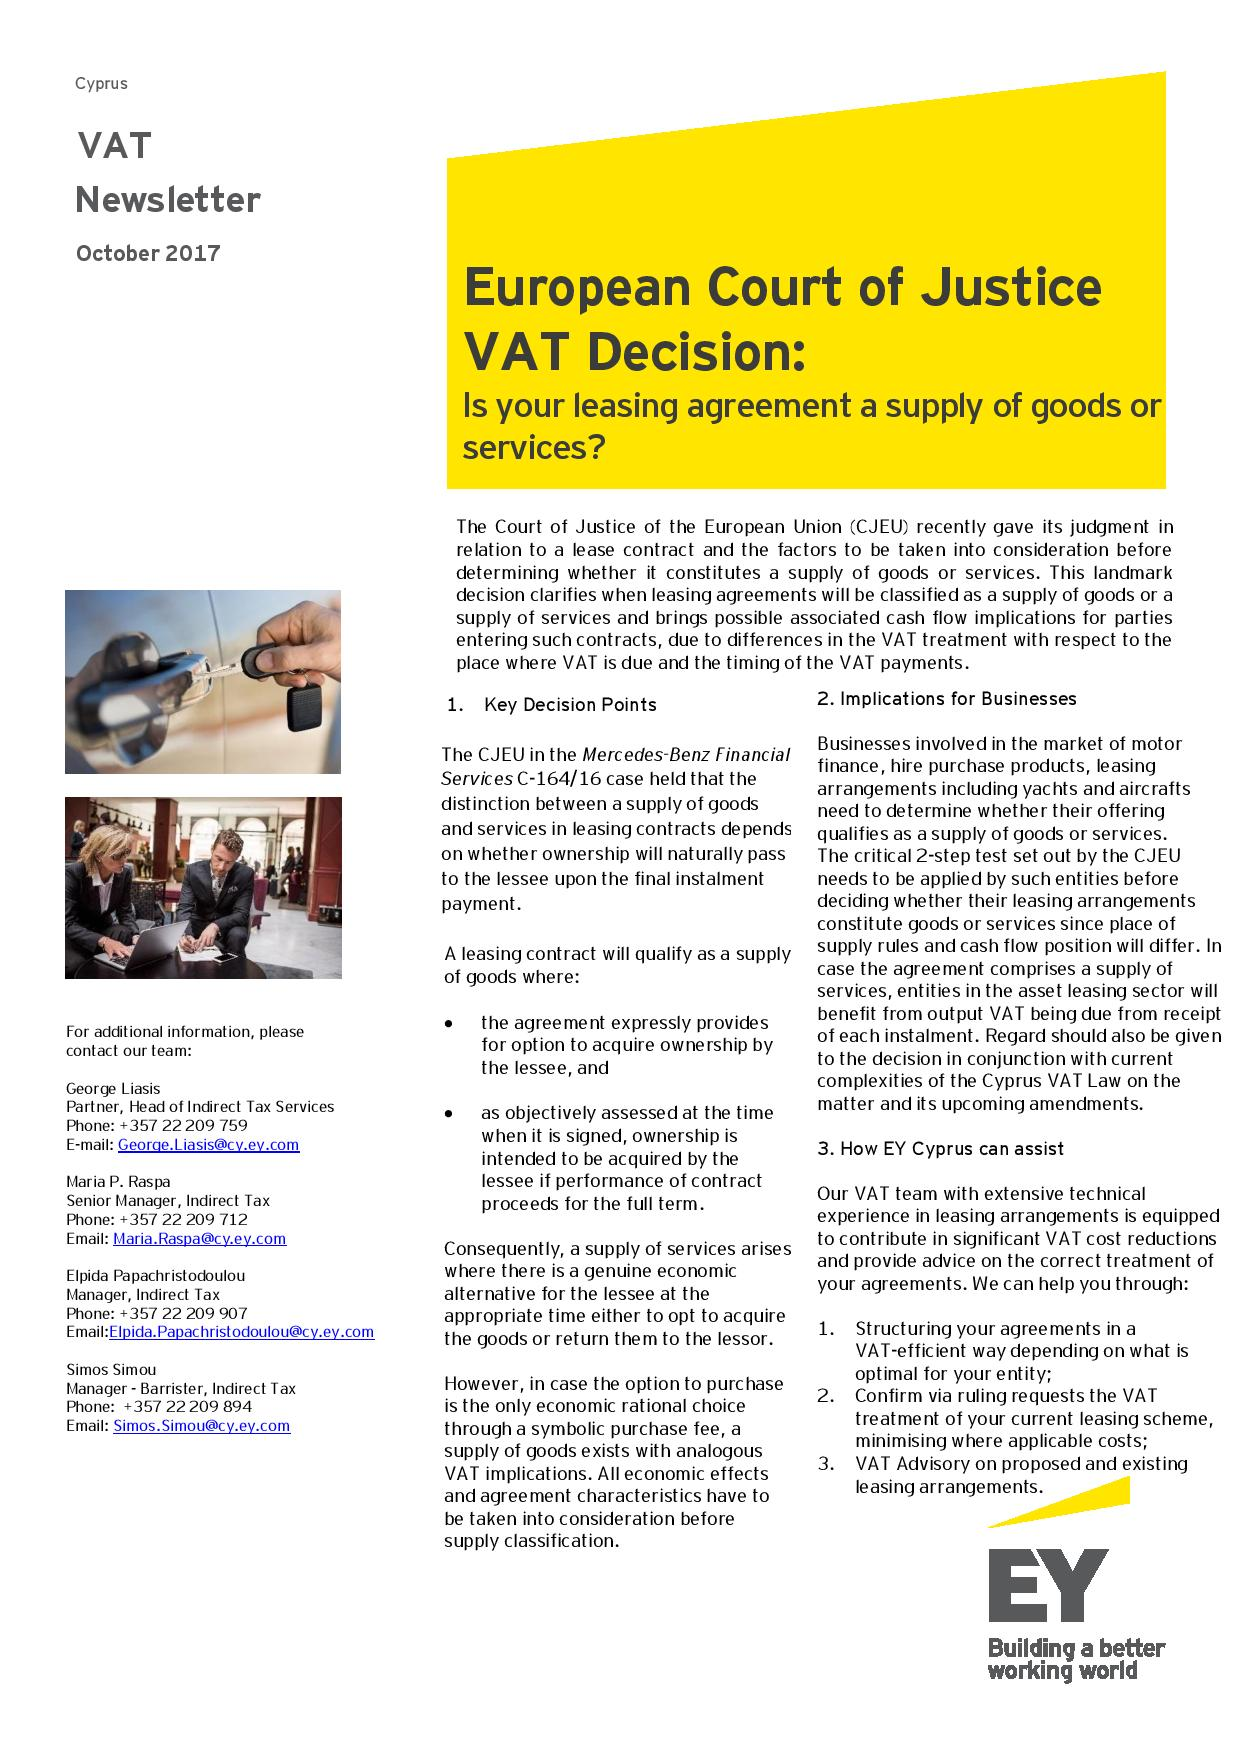 EY Tax Newsletter October 2017